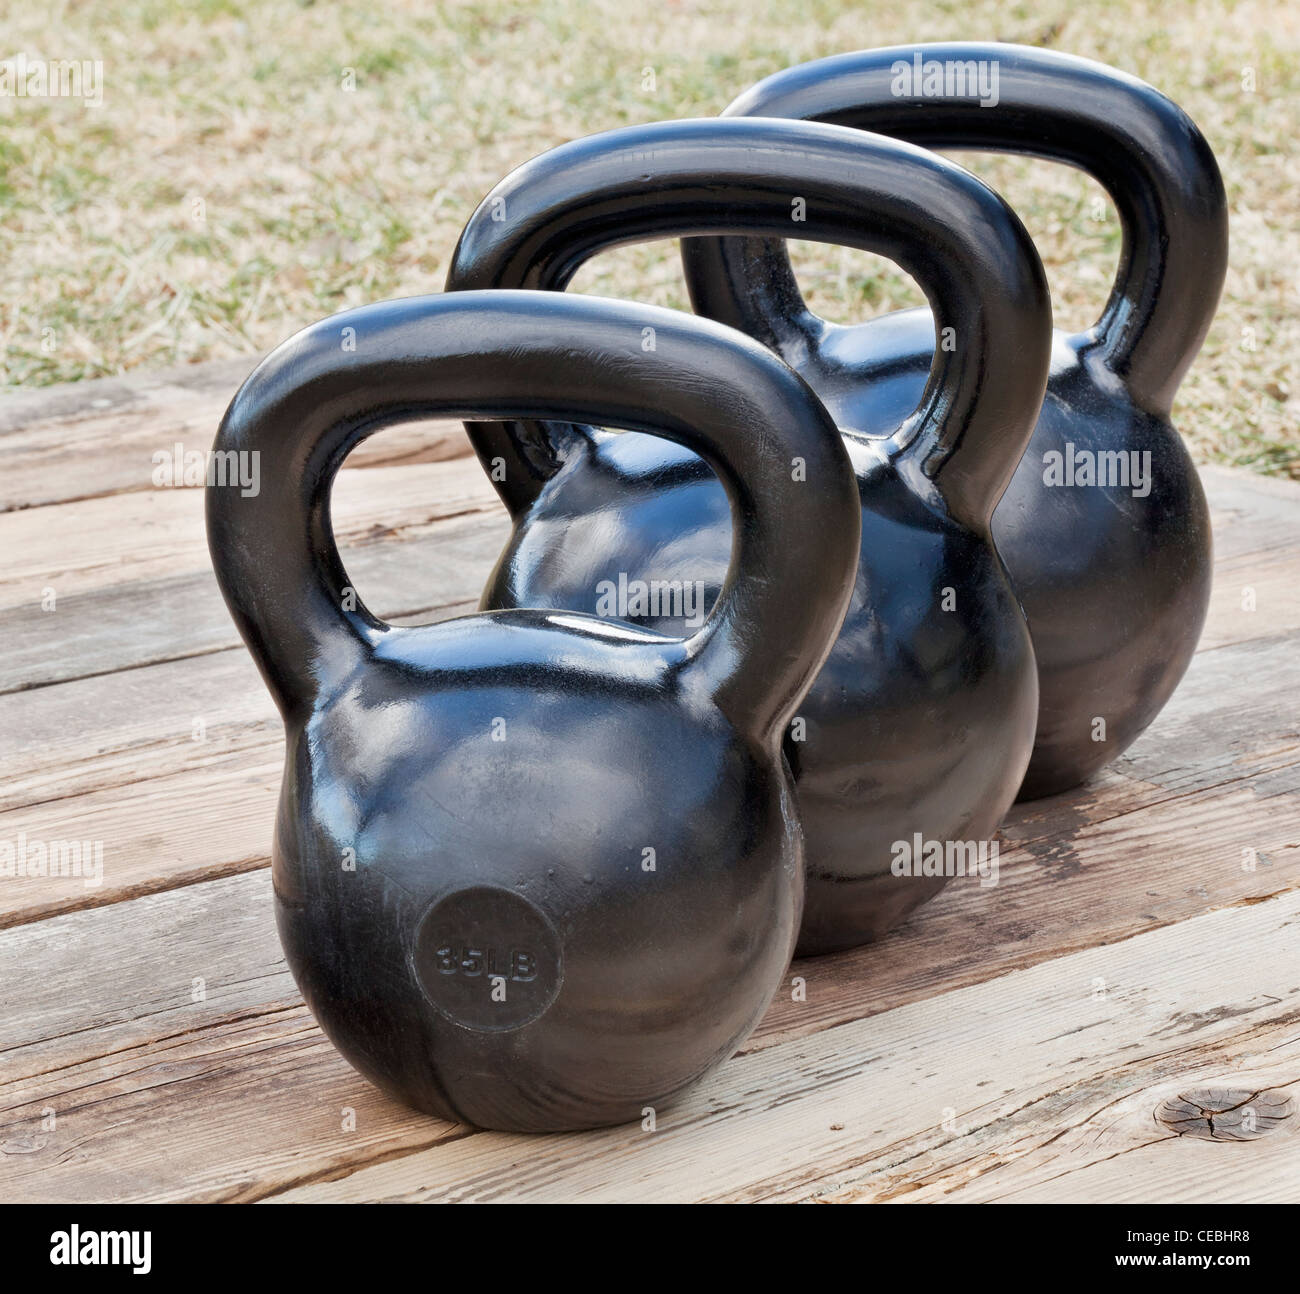 three black iron kettlebell for weight training (35 and 50 lb) on wood grunge deck, outdoors with sky reflections - Stock Image